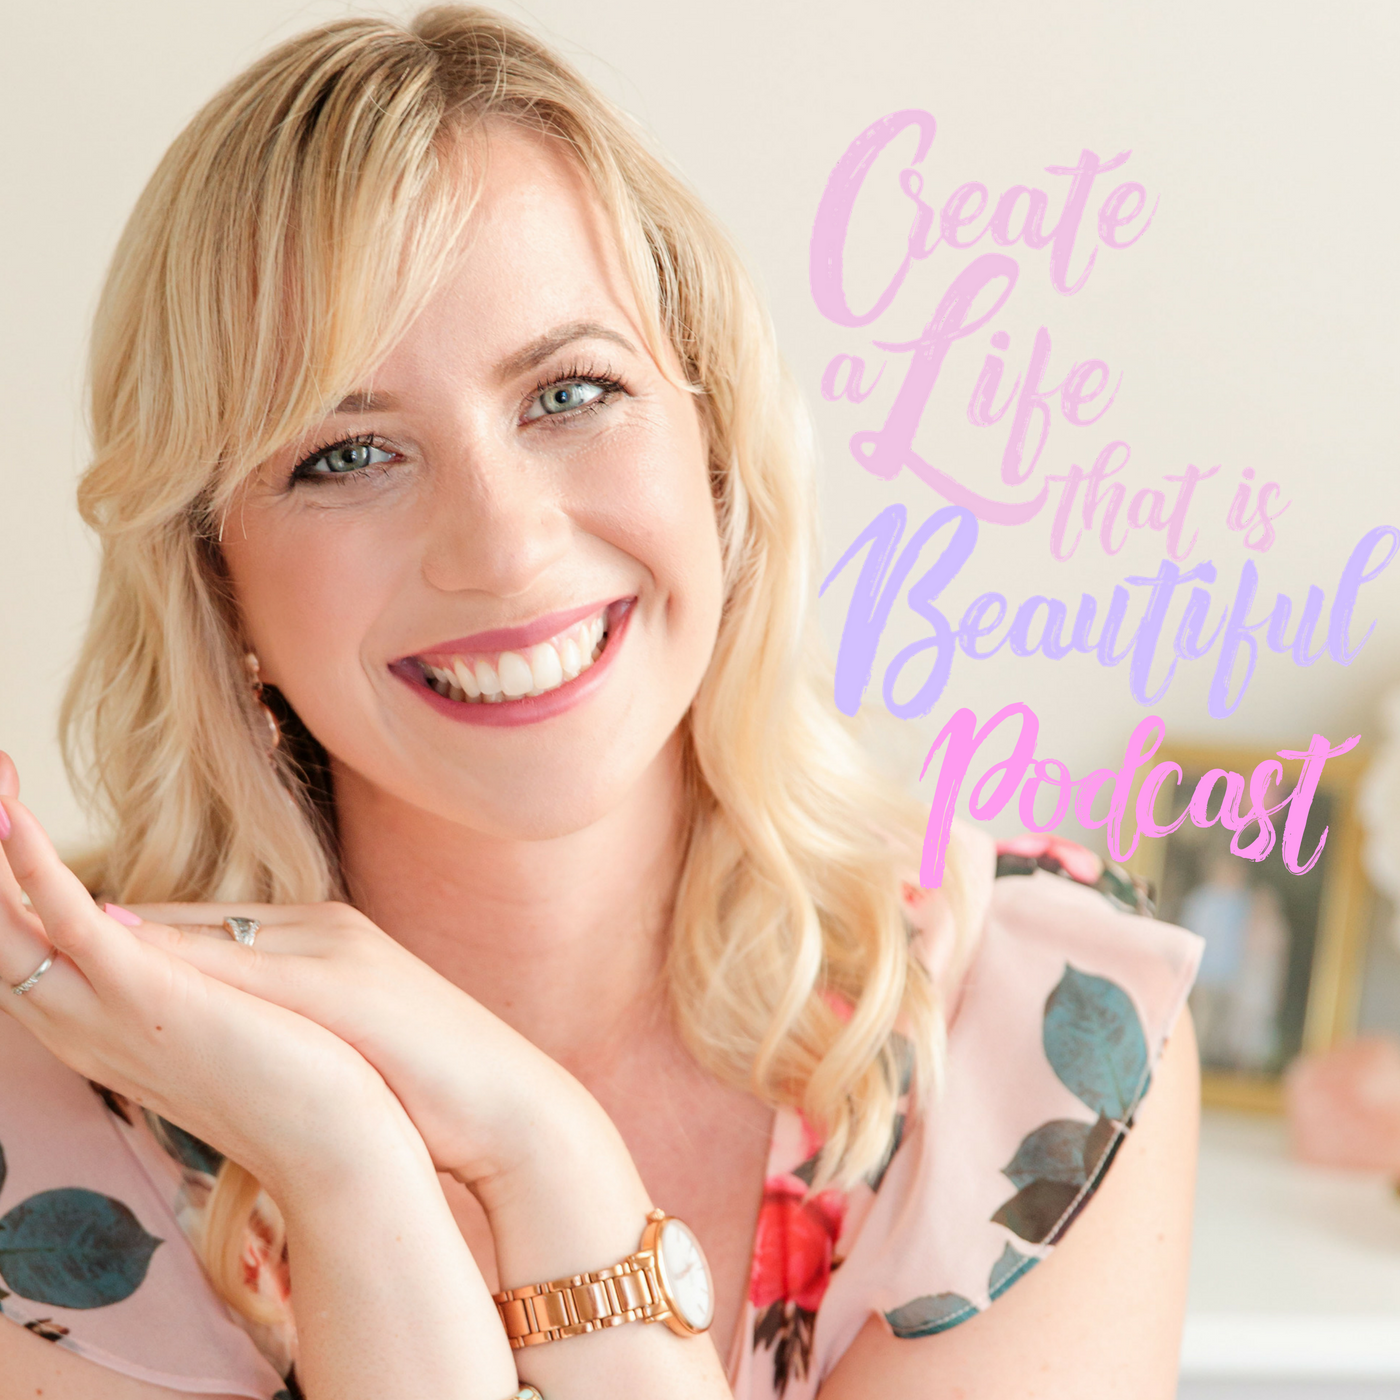 Check out my weekly podcast. - The Create a Life that is Beautiful Podcast is the place to be for high vibe people looking to make a heart-centred difference in the world!Designed to inspire, empower + support you in uncovering your truth & purpose so that you are sharing your unique gifts with the world stat!